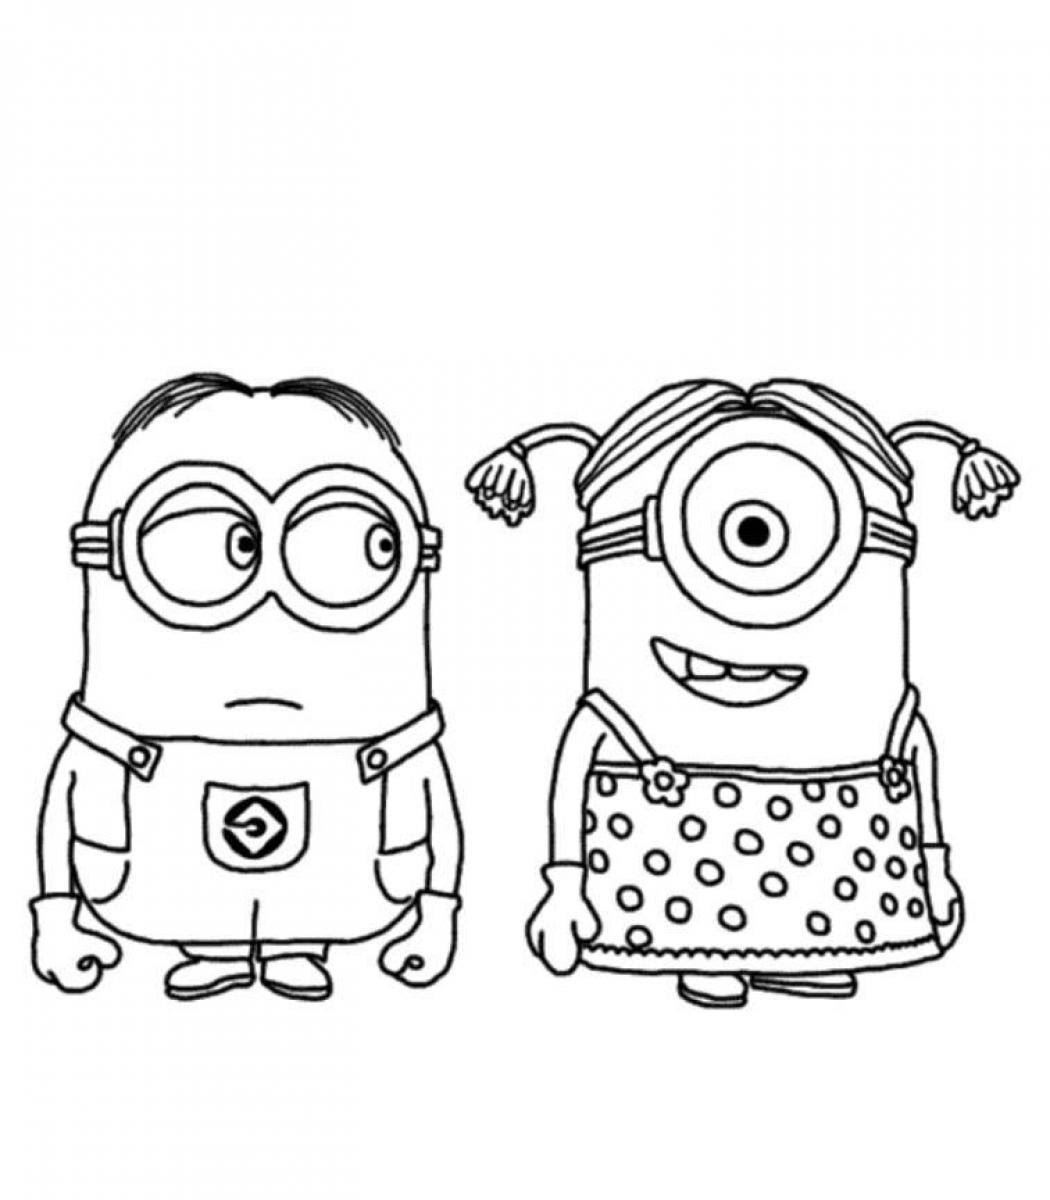 Coloring Pages For Kids Minions At Getcoloringscom Free Printable